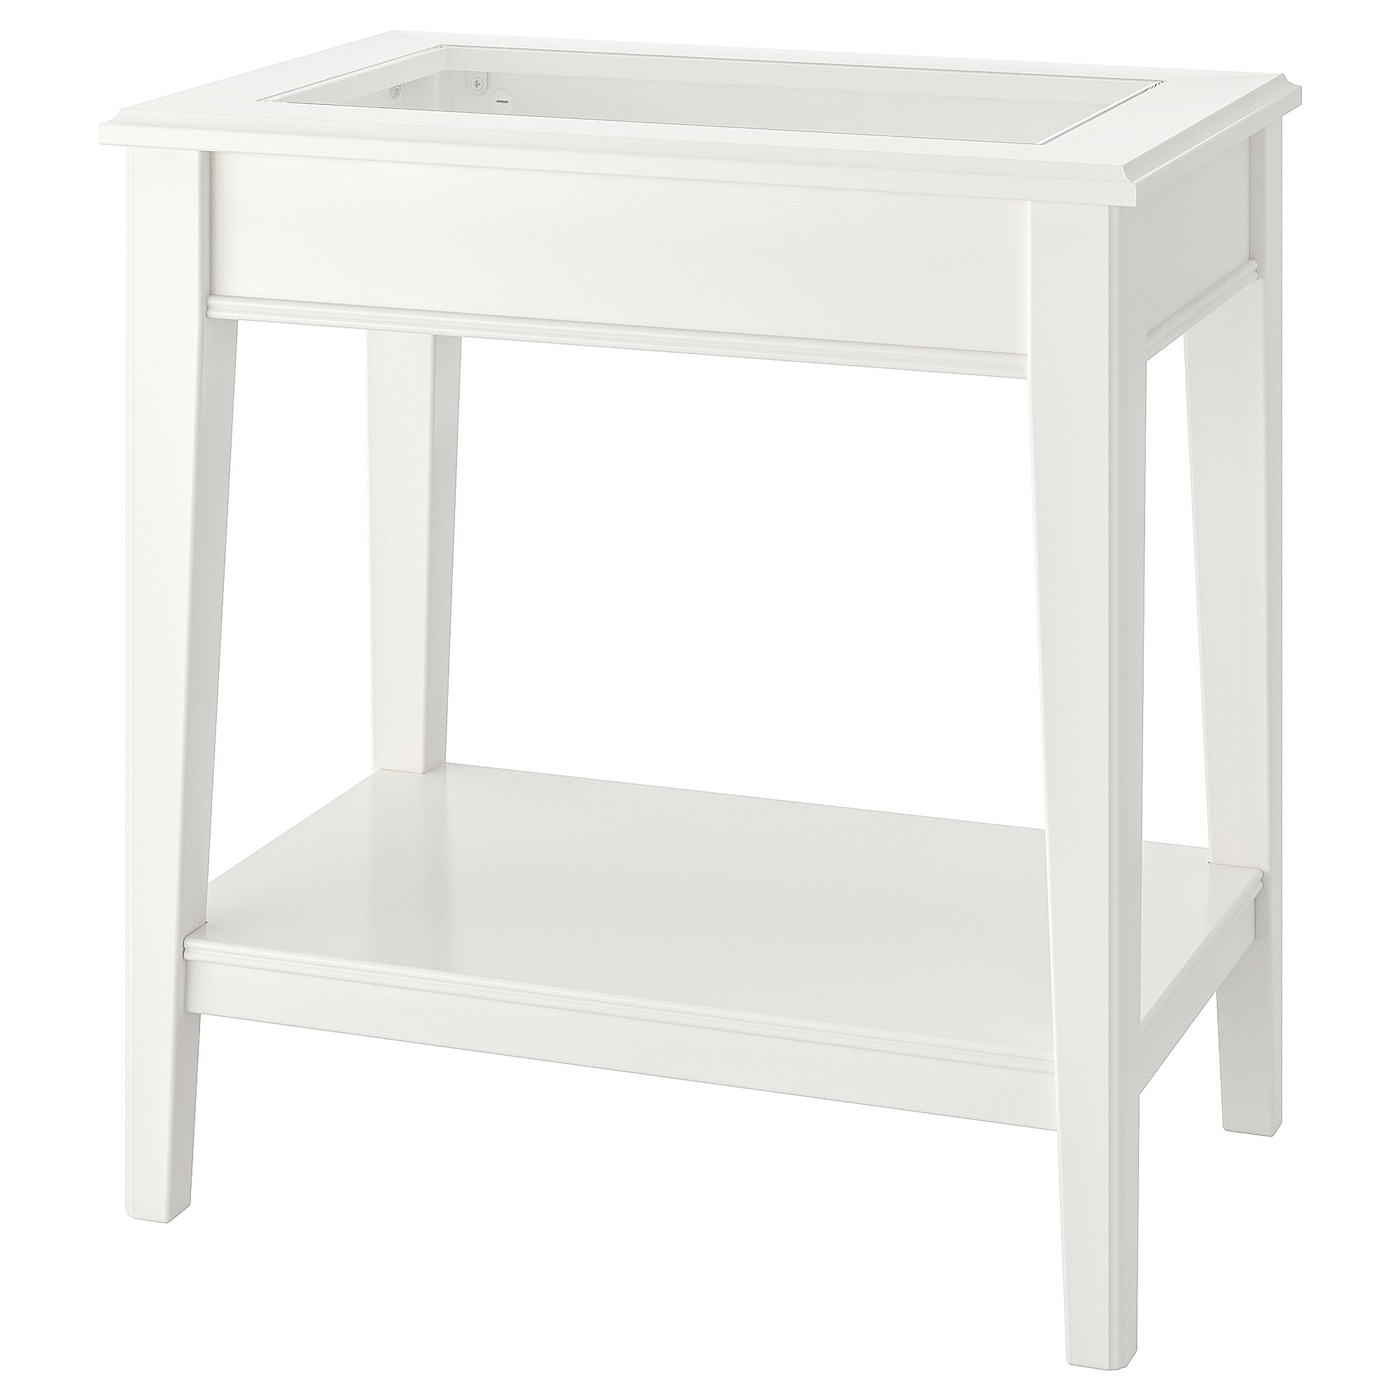 Picture of: Liatorp Side Table White Glass 22 1 2×15 3 4 Ikea